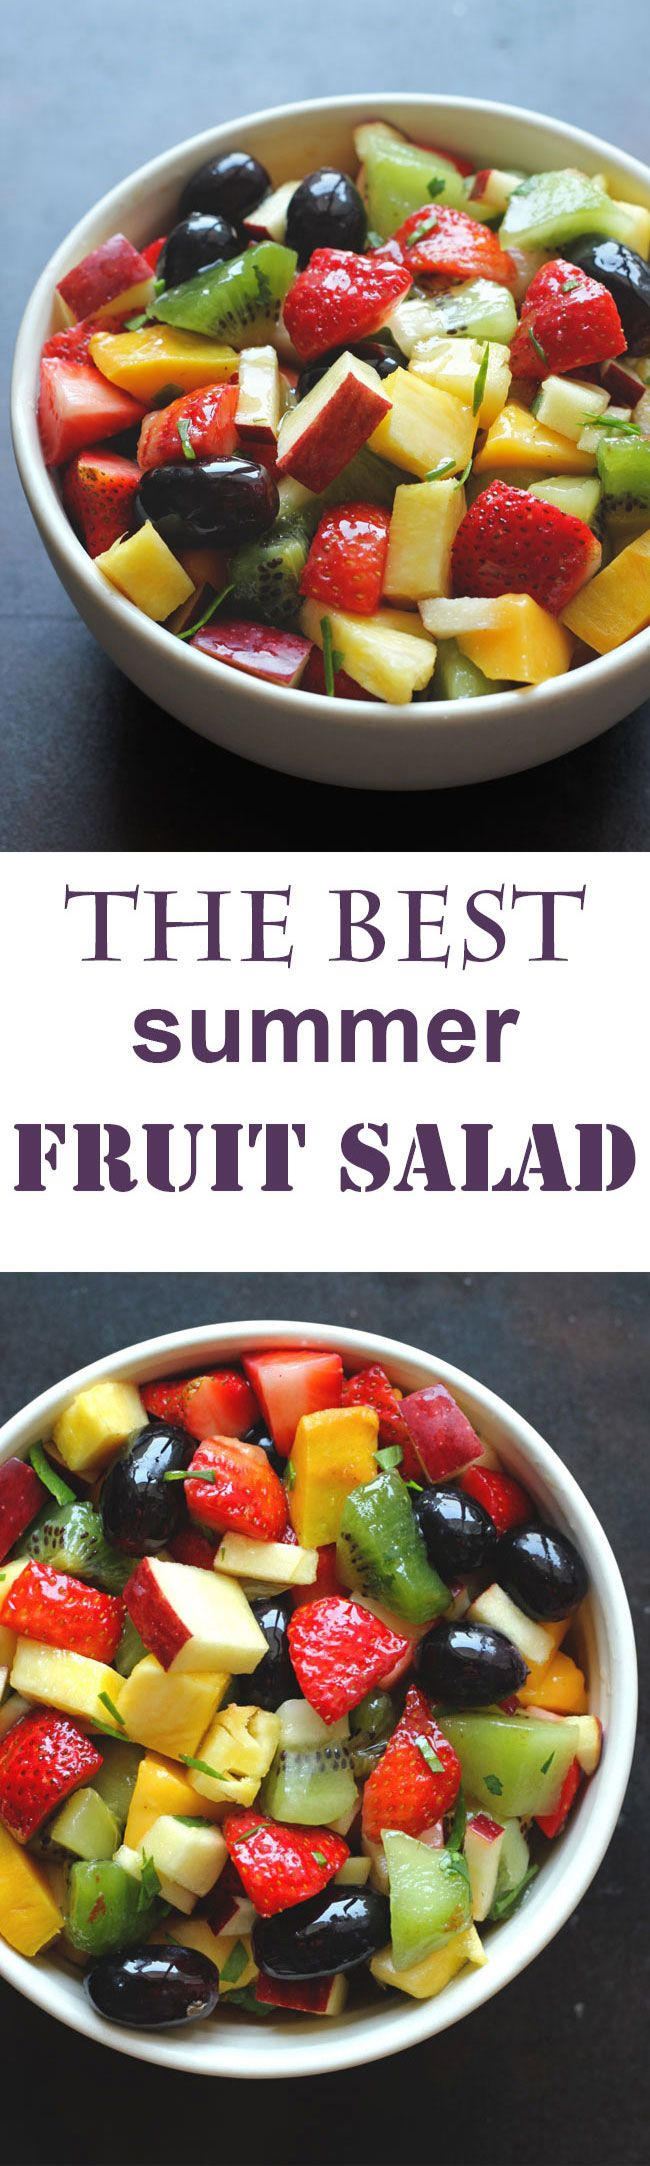 Fruit Salad is the best gluten-free, vegan and paleo friendly healthy salad recipe bursting with summer flavors. funfoodfrolic.com #fruitsalad #veganfood #paleo #salad